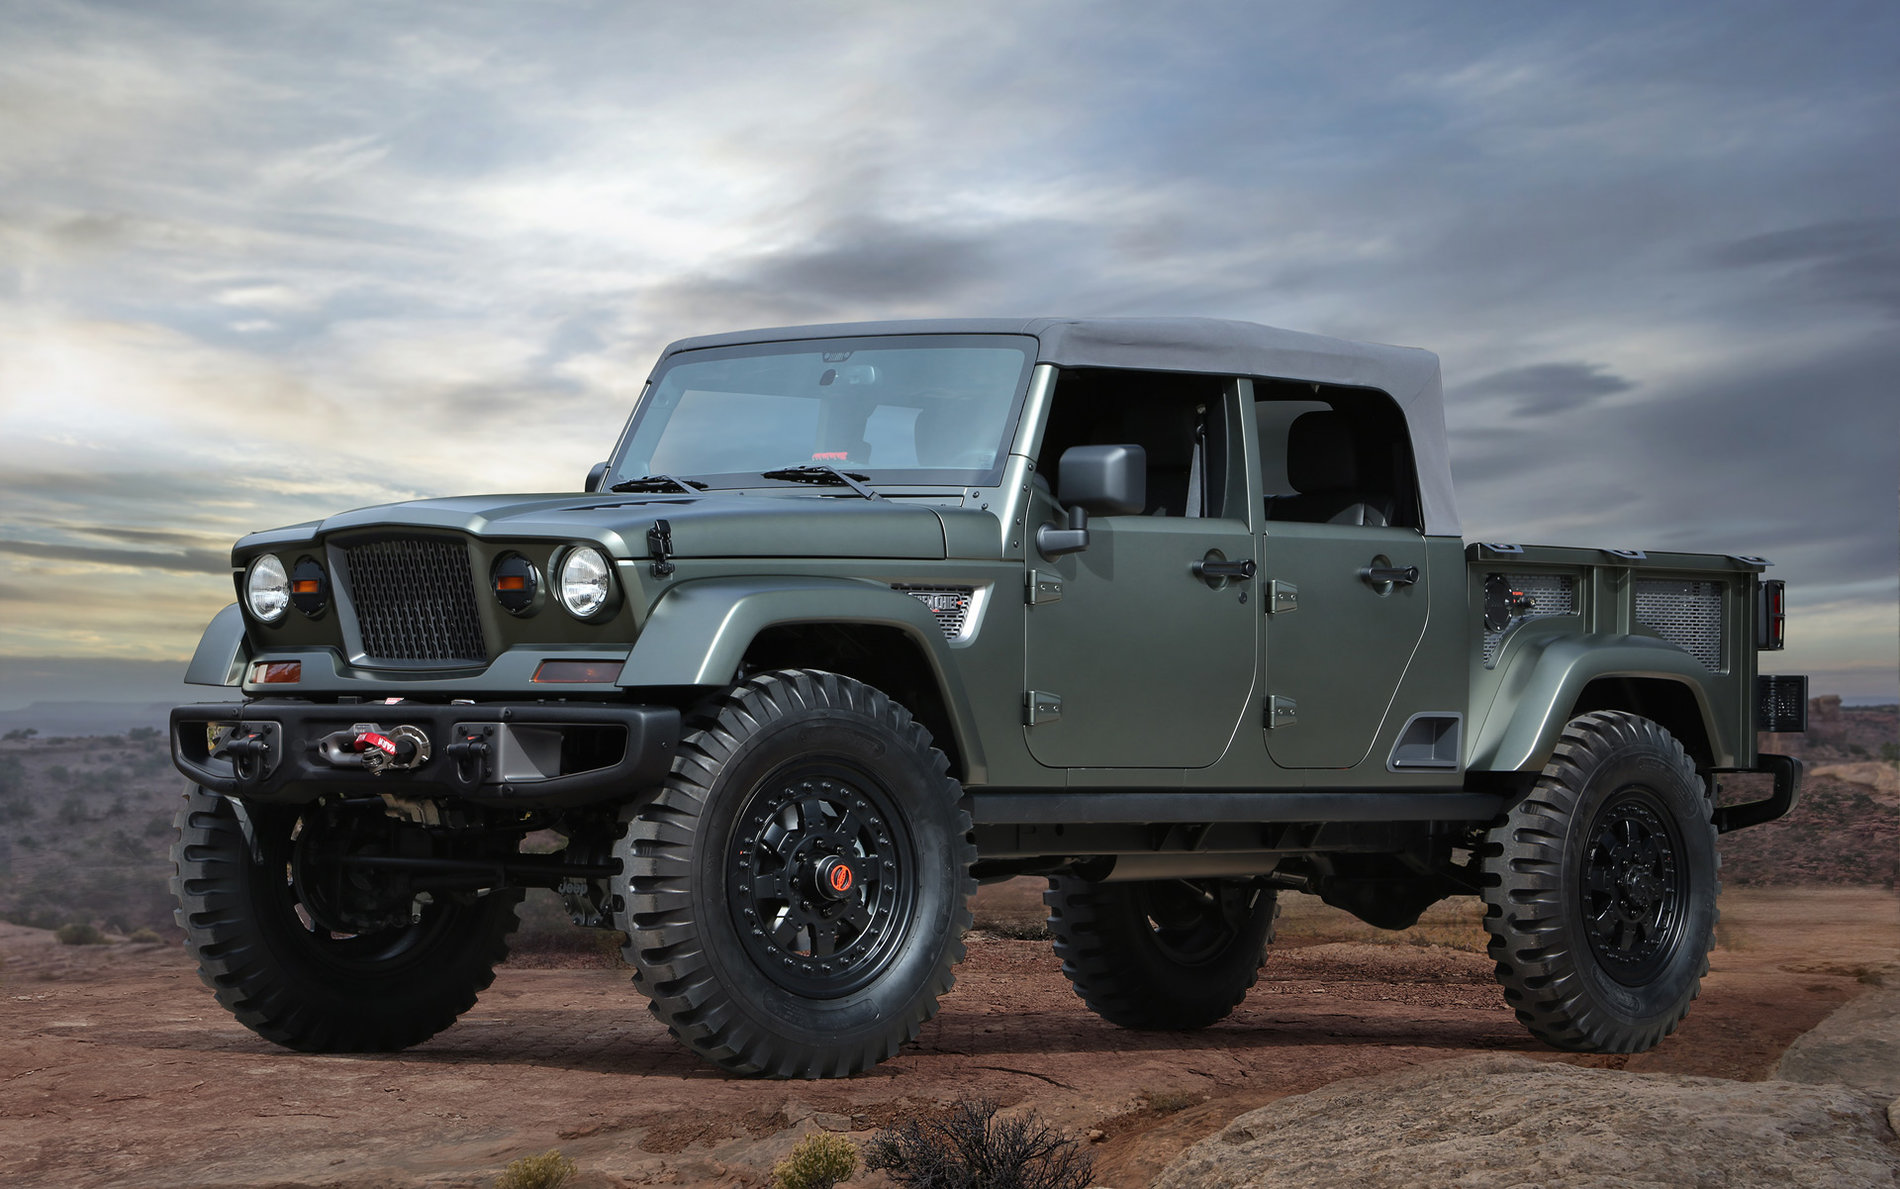 jeep-crew-chief-715-concept-2016-easter-jeep-safari_100549039_h.jpg